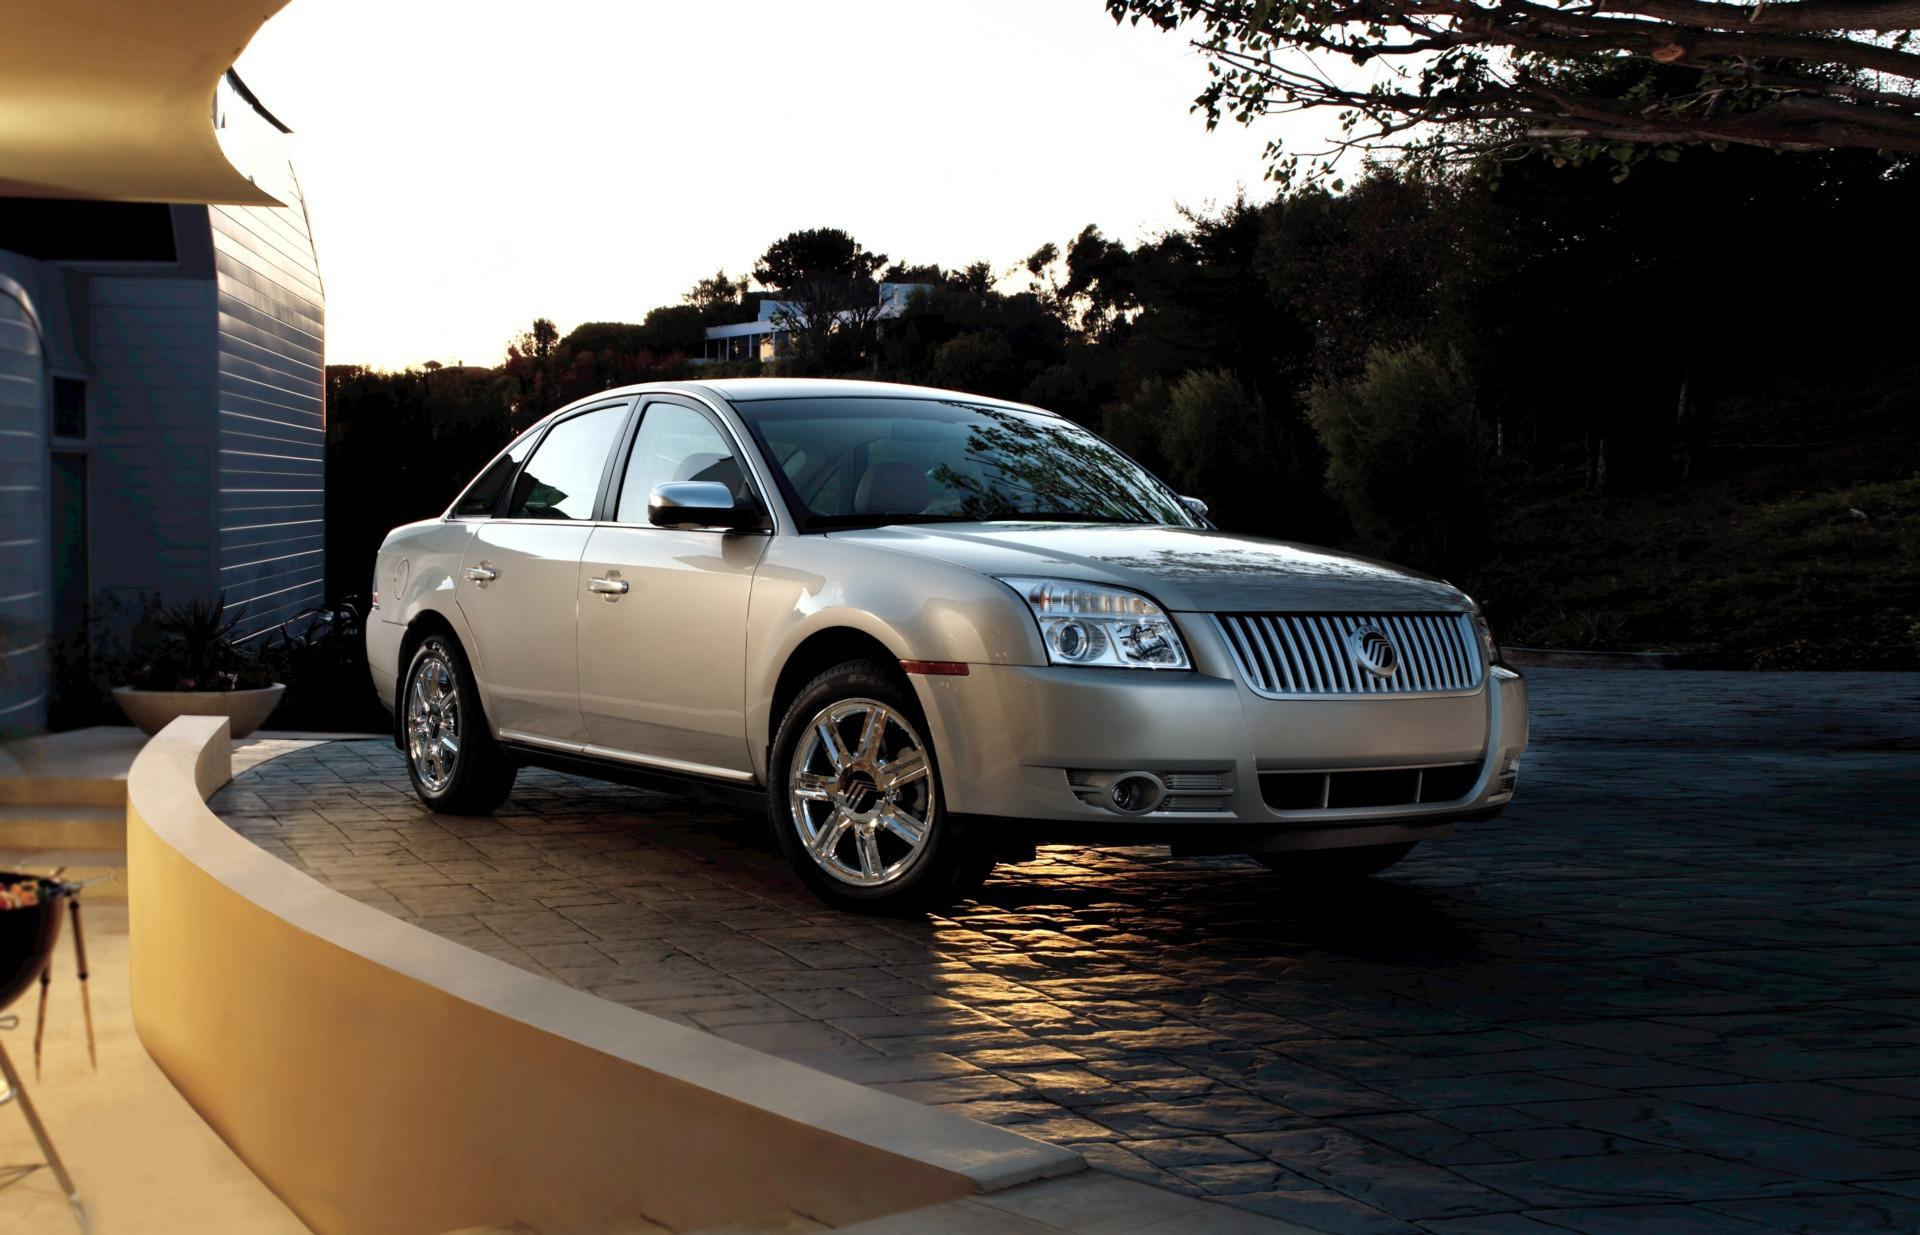 2009 Mercury Sable News and Information - conceptcarz.com